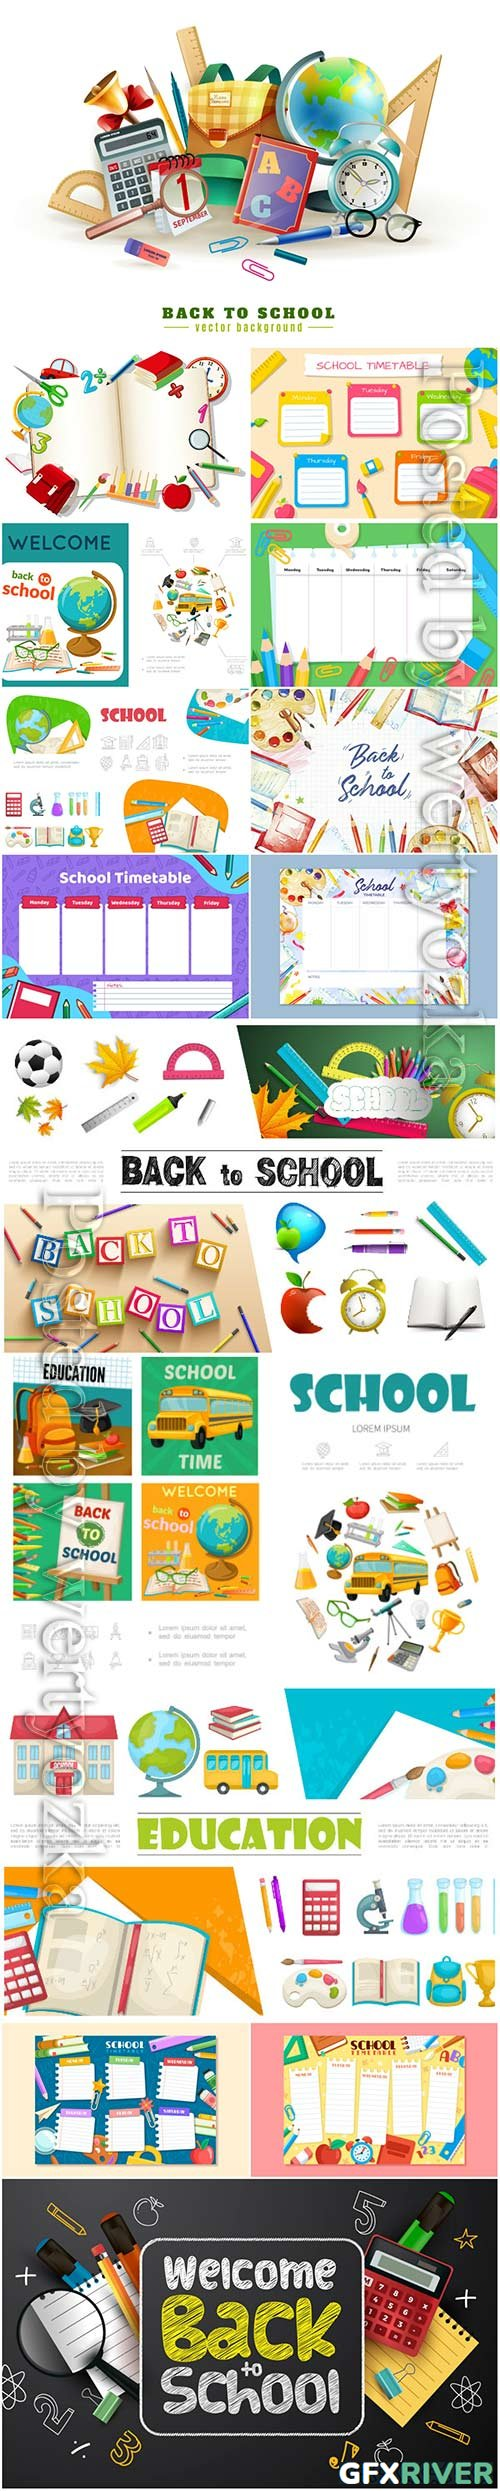 School set and stationery vector illustration